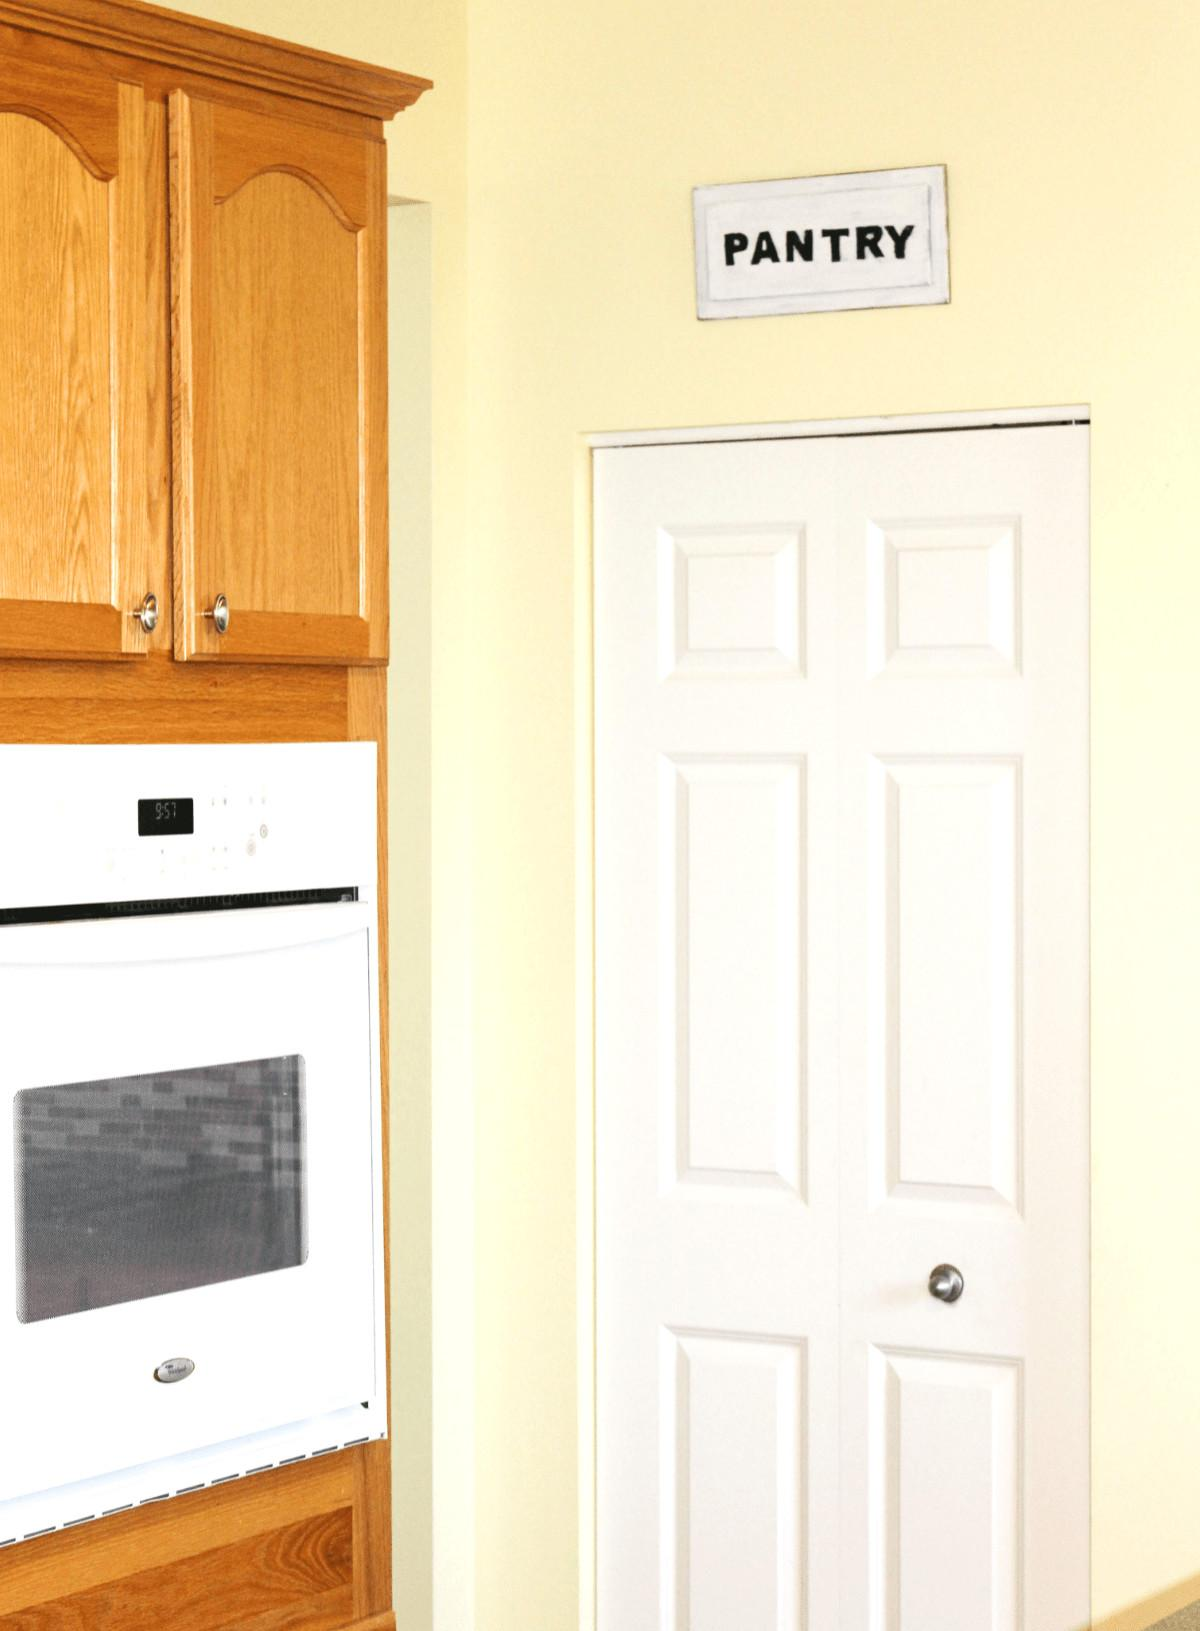 Pantry Sign Easy Home Zan